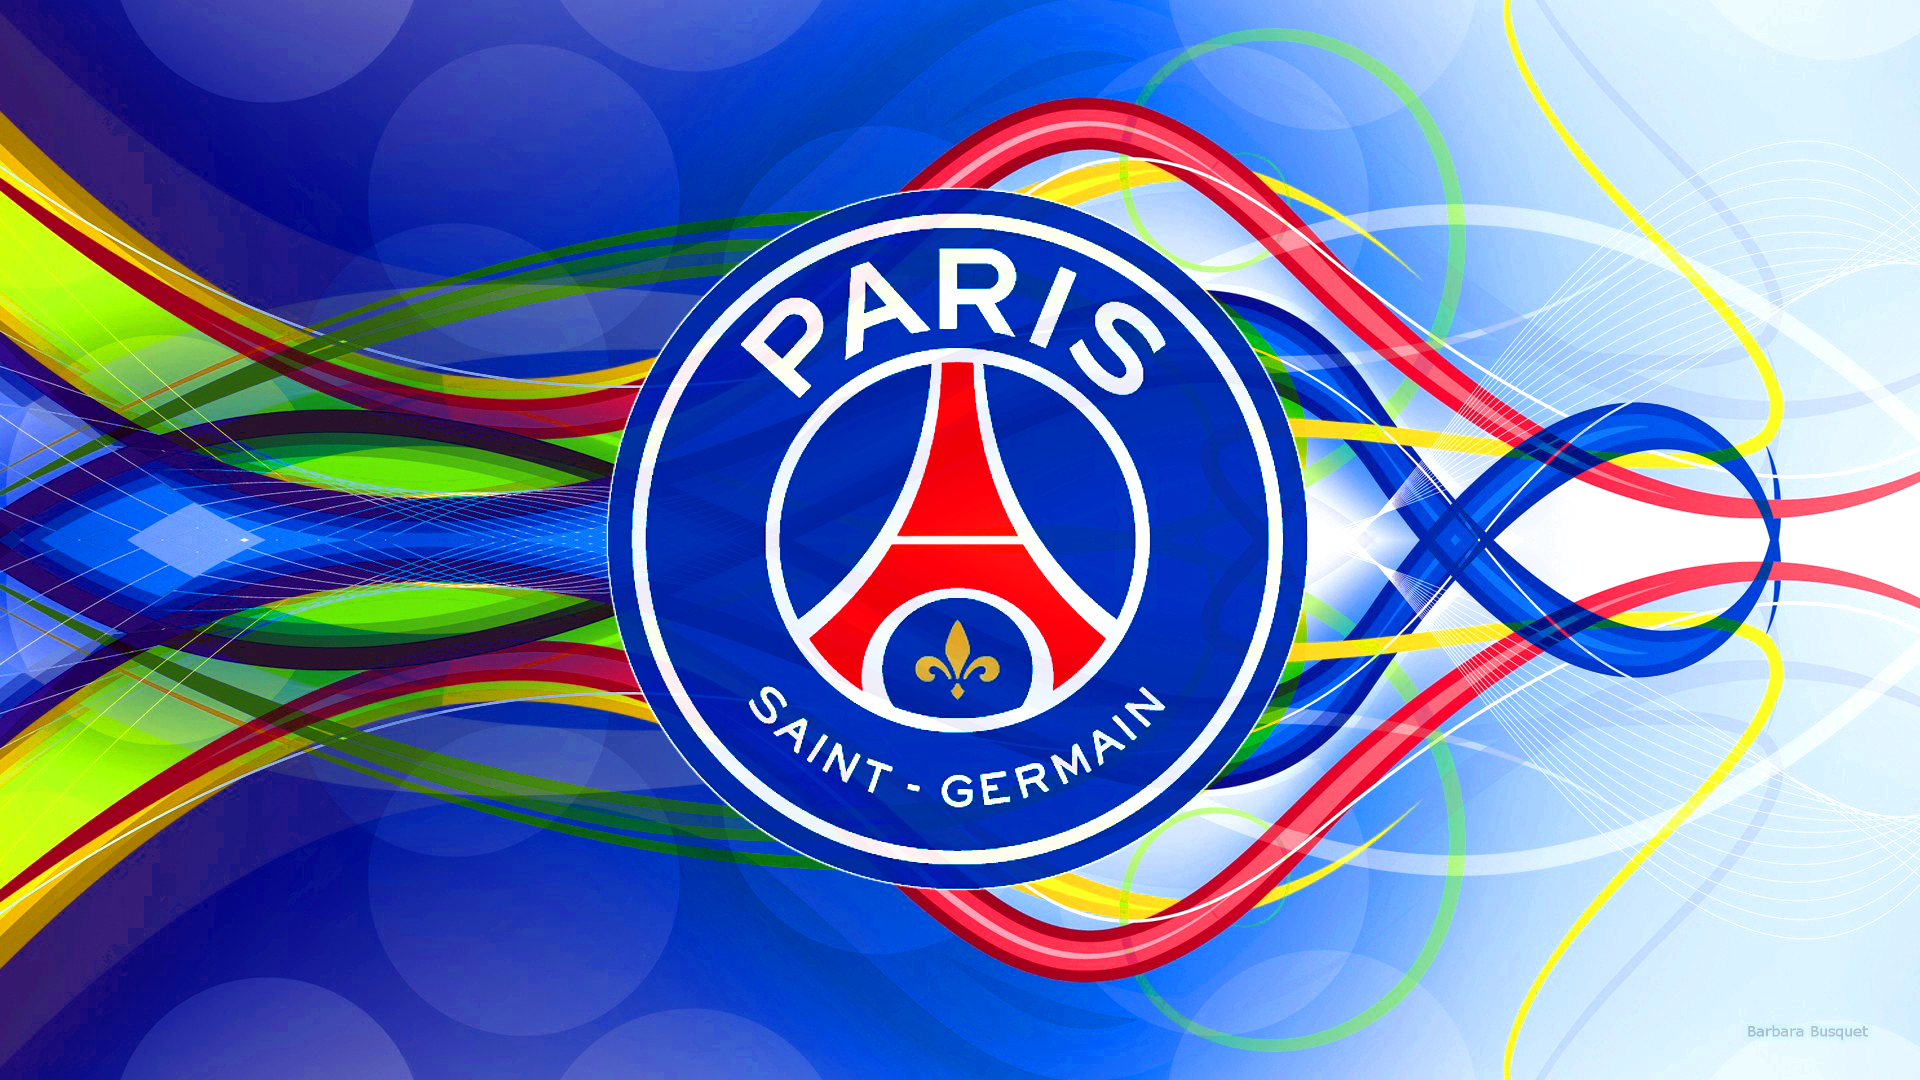 paris saint germain logo - photo #20